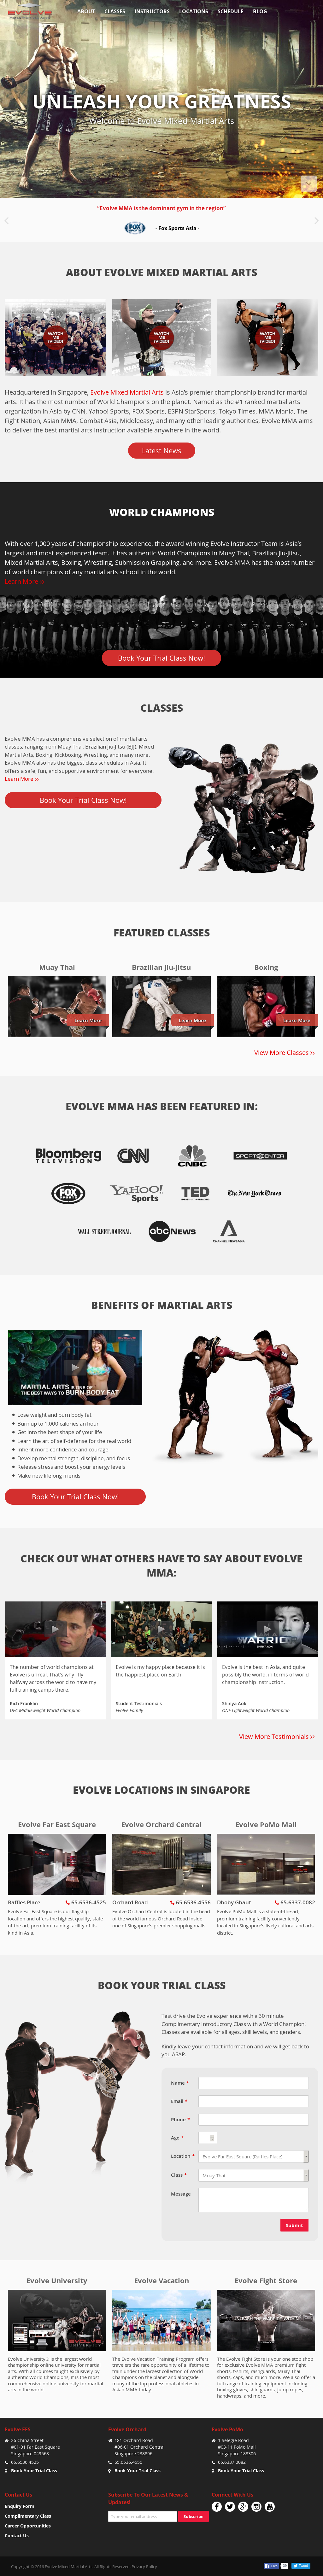 Evolve Mma Competitors, Revenue and Employees - Owler